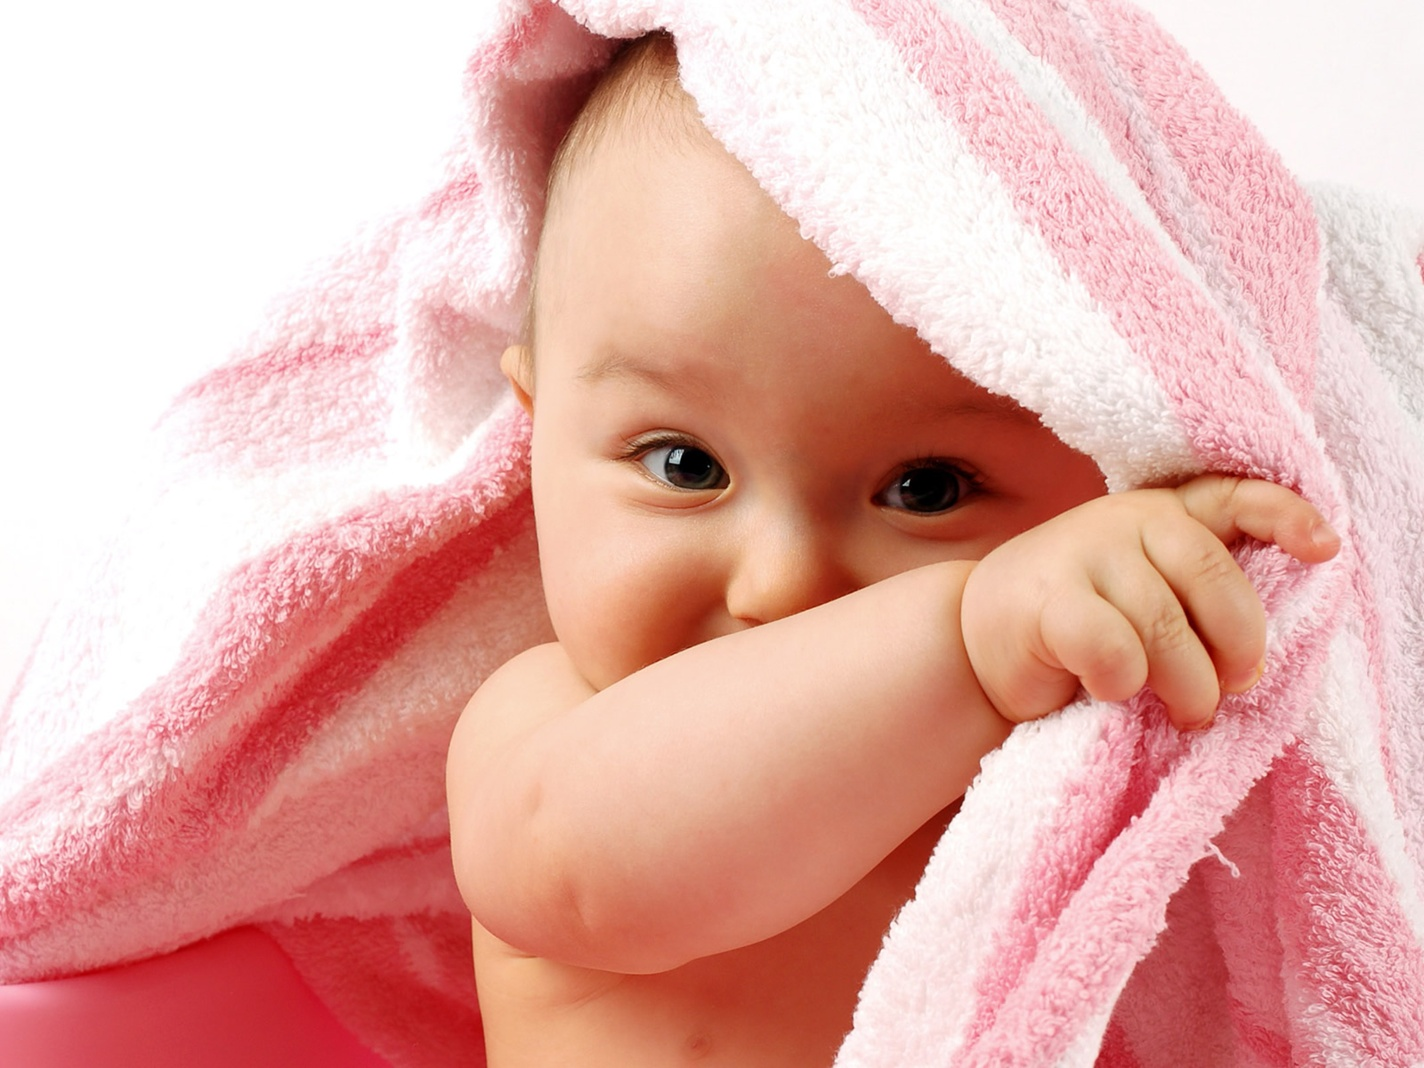 Free Download Wallpaper Wallpaper Cute Baby Wallpaper 1424x1068 For Your Desktop Mobile Tablet Explore 48 Baby Wallpaper Download Wallpaper Of Babies Free Baby Wallpapers And Backgrounds Cute Babies Wallpapers Free Download